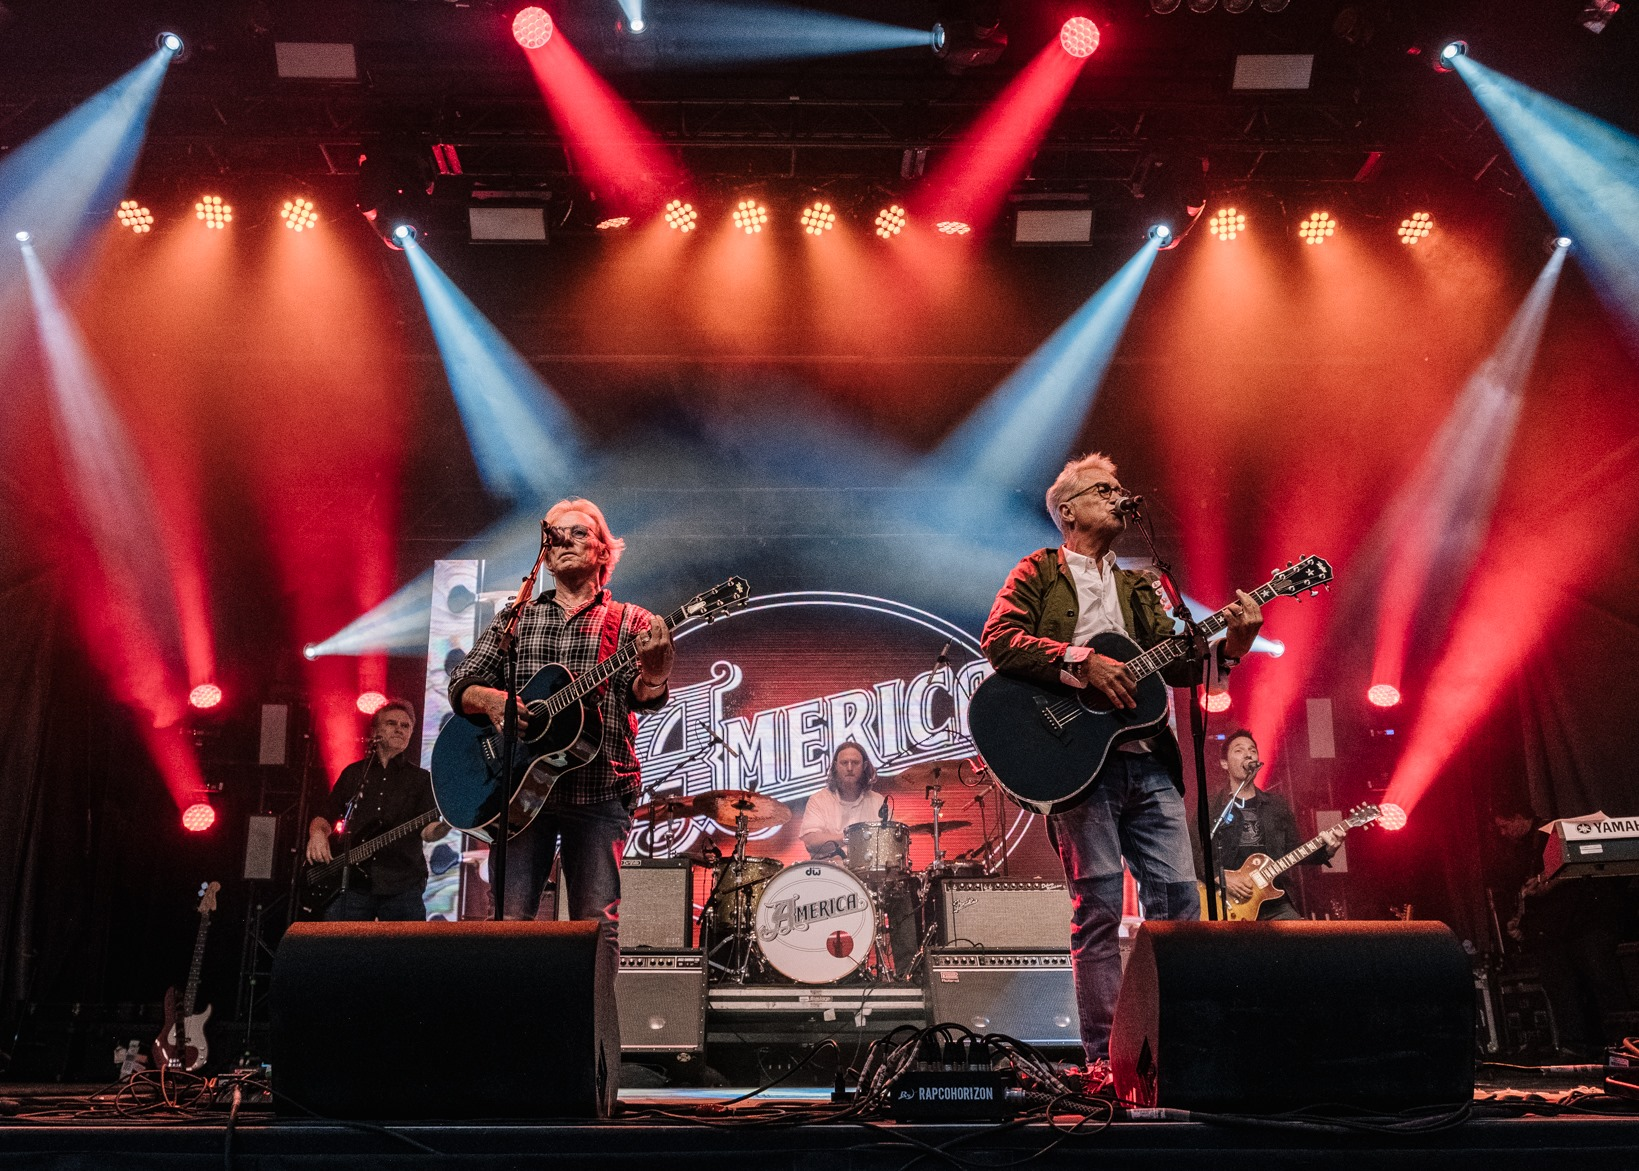 [Gig Review] America, Mitch King - Canberra Theatre - Tue, 3 Dec